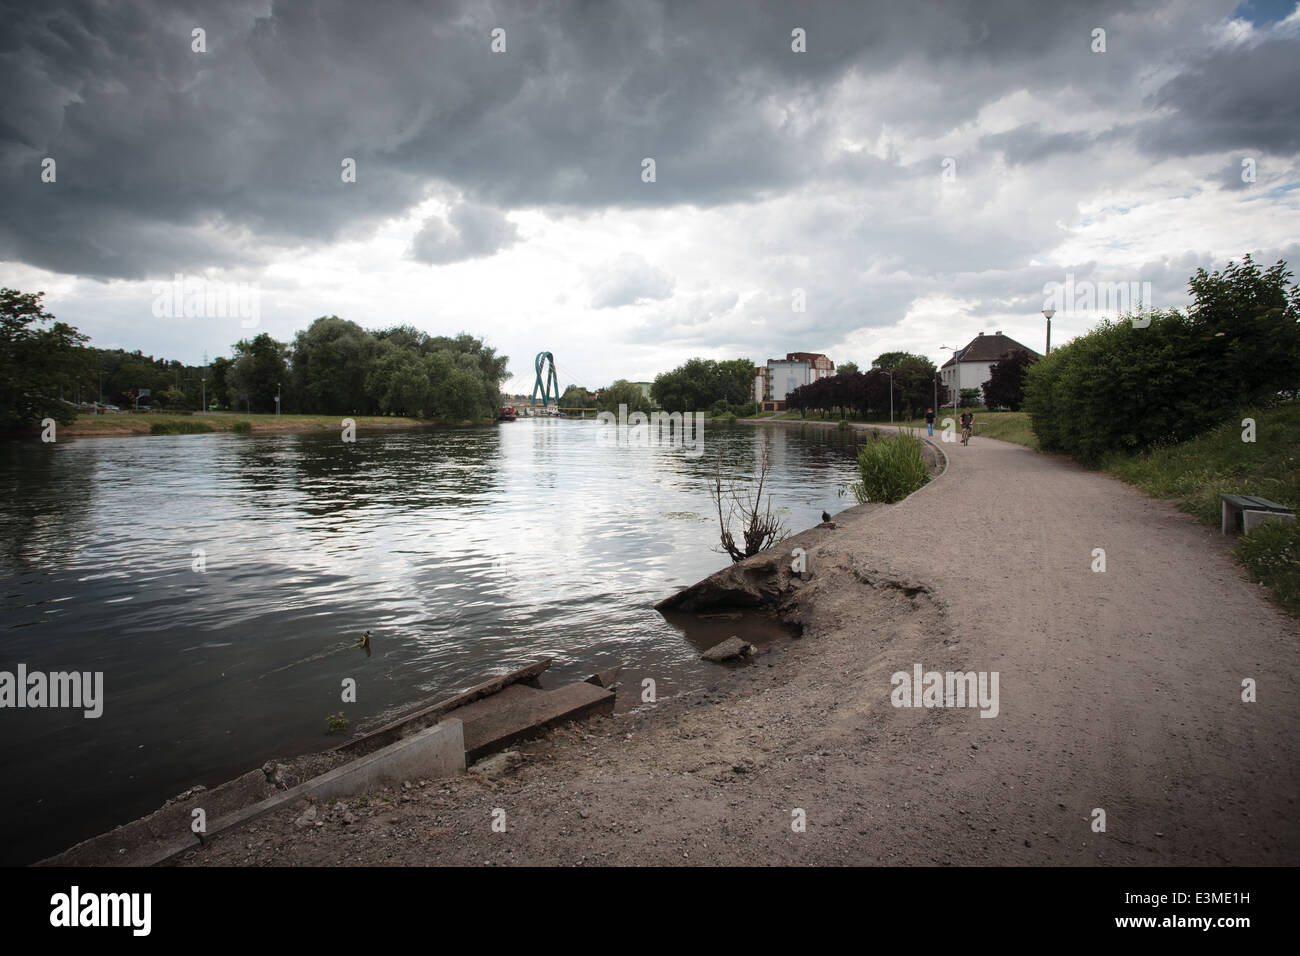 A bend in the river Brda in Bydgoszcz, Poland is seen. - Stock Image